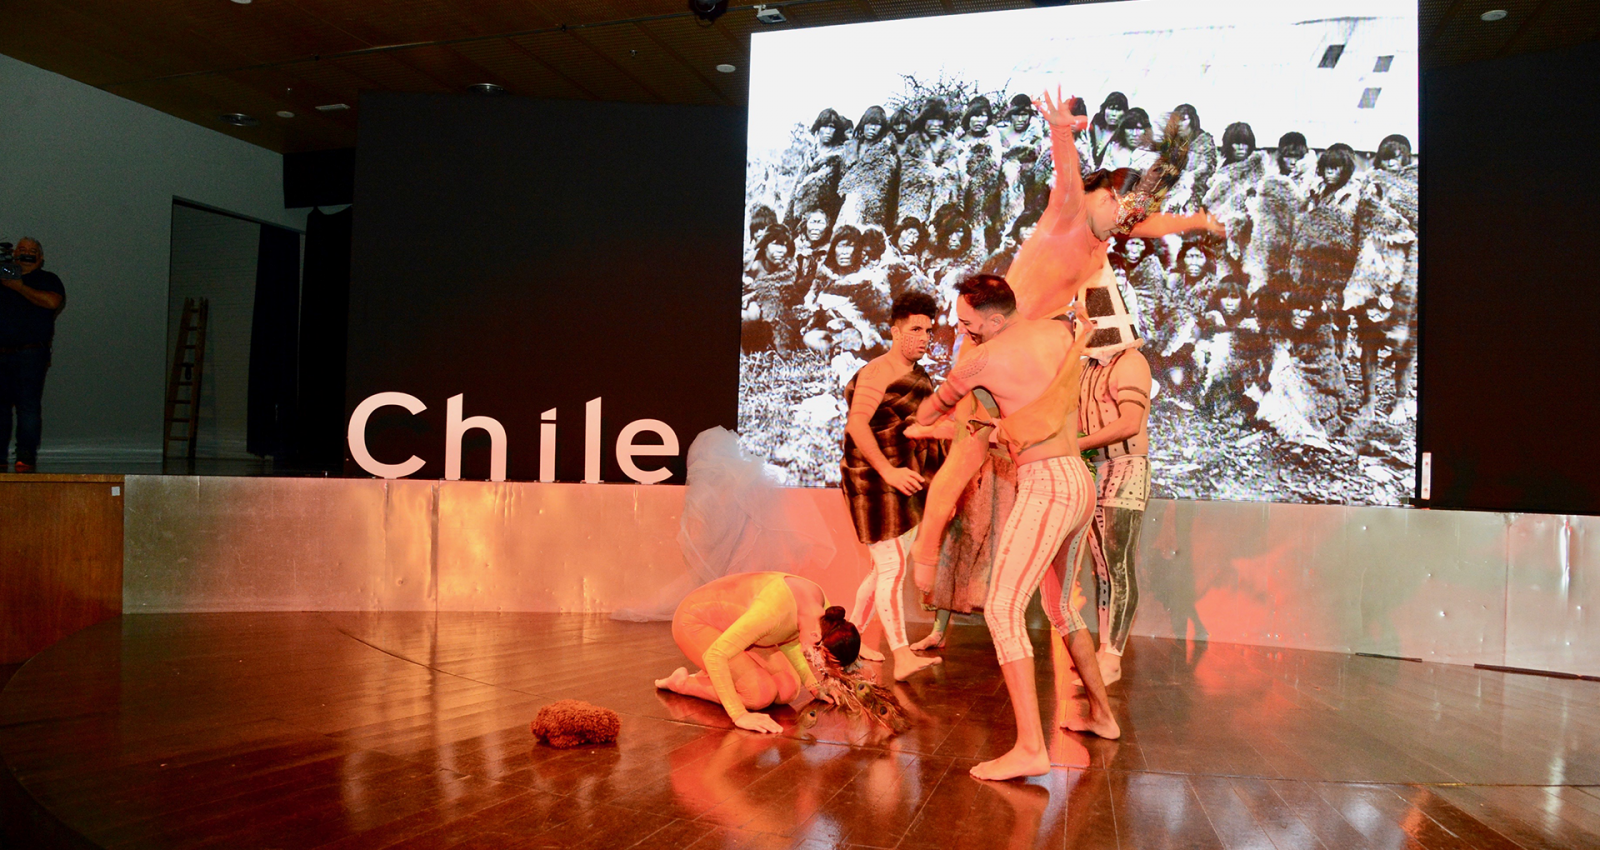 evento-chile-travel-campana-fitur-2020-8